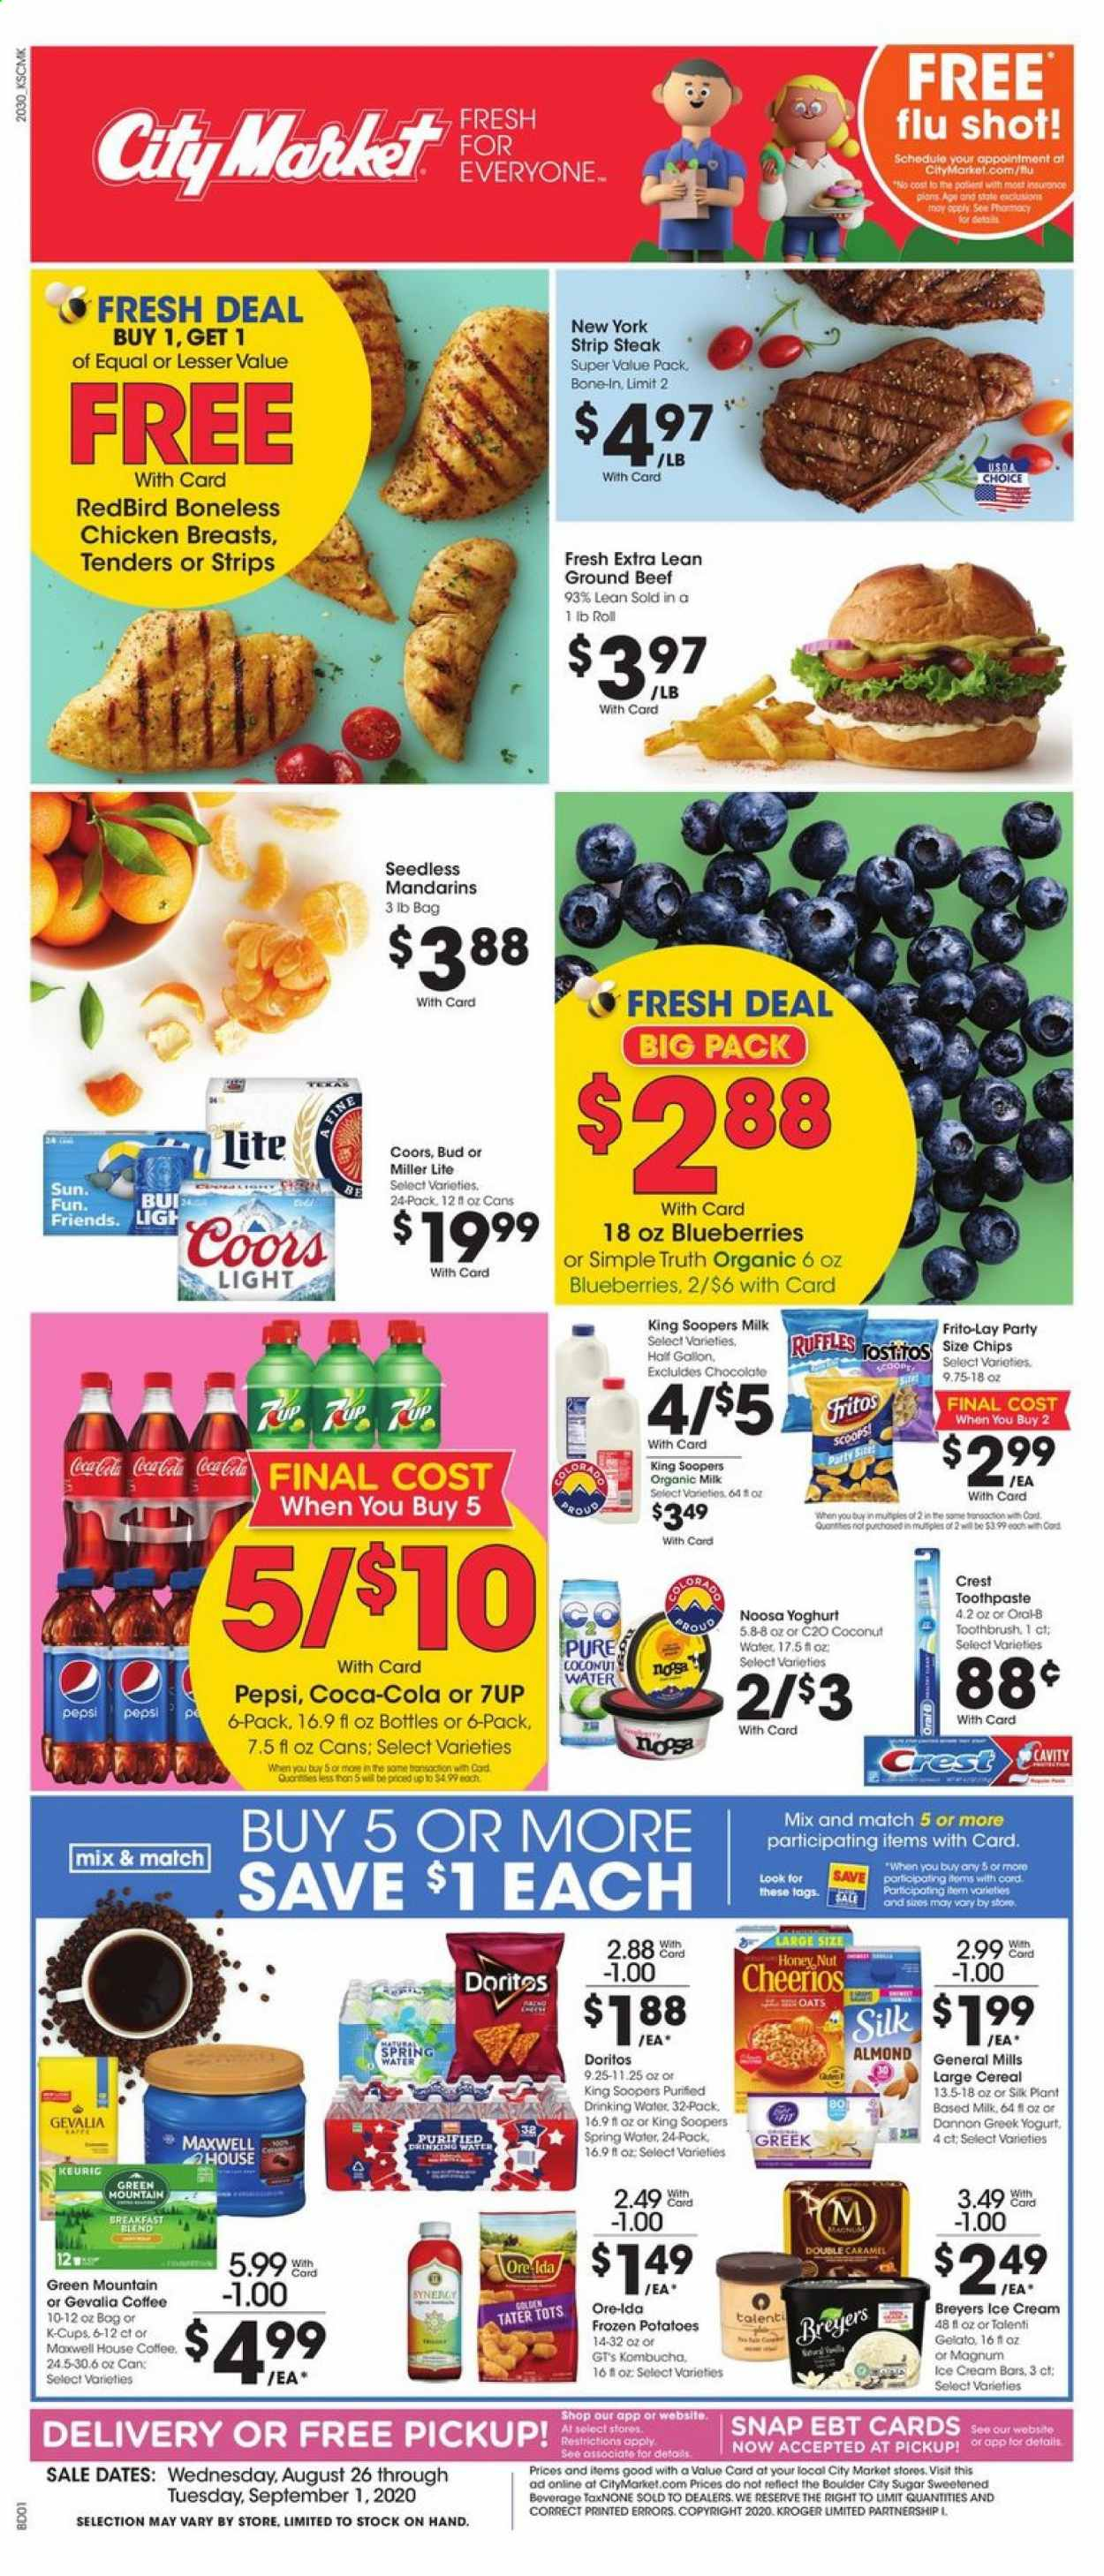 City Market Flyer - 08.26.2020 - 09.01.2020 - Sales products - bag, beef meat, blueberries, caramel, cereals, Coca-Cola, cod, coffee, Doritos, Fritos, frozen, greek yogurt, ground beef, Magnum, Miller Lite, spring water, sugar, toothbrush, honey, ice cream, ice cream bars, potatoes, cheerios, chicken, chicken breast, Pepsi, chips, chocolate, organic milk, steak, coconut, toothpaste, yoghurt, Coors, coconut water, spring. Page 1.